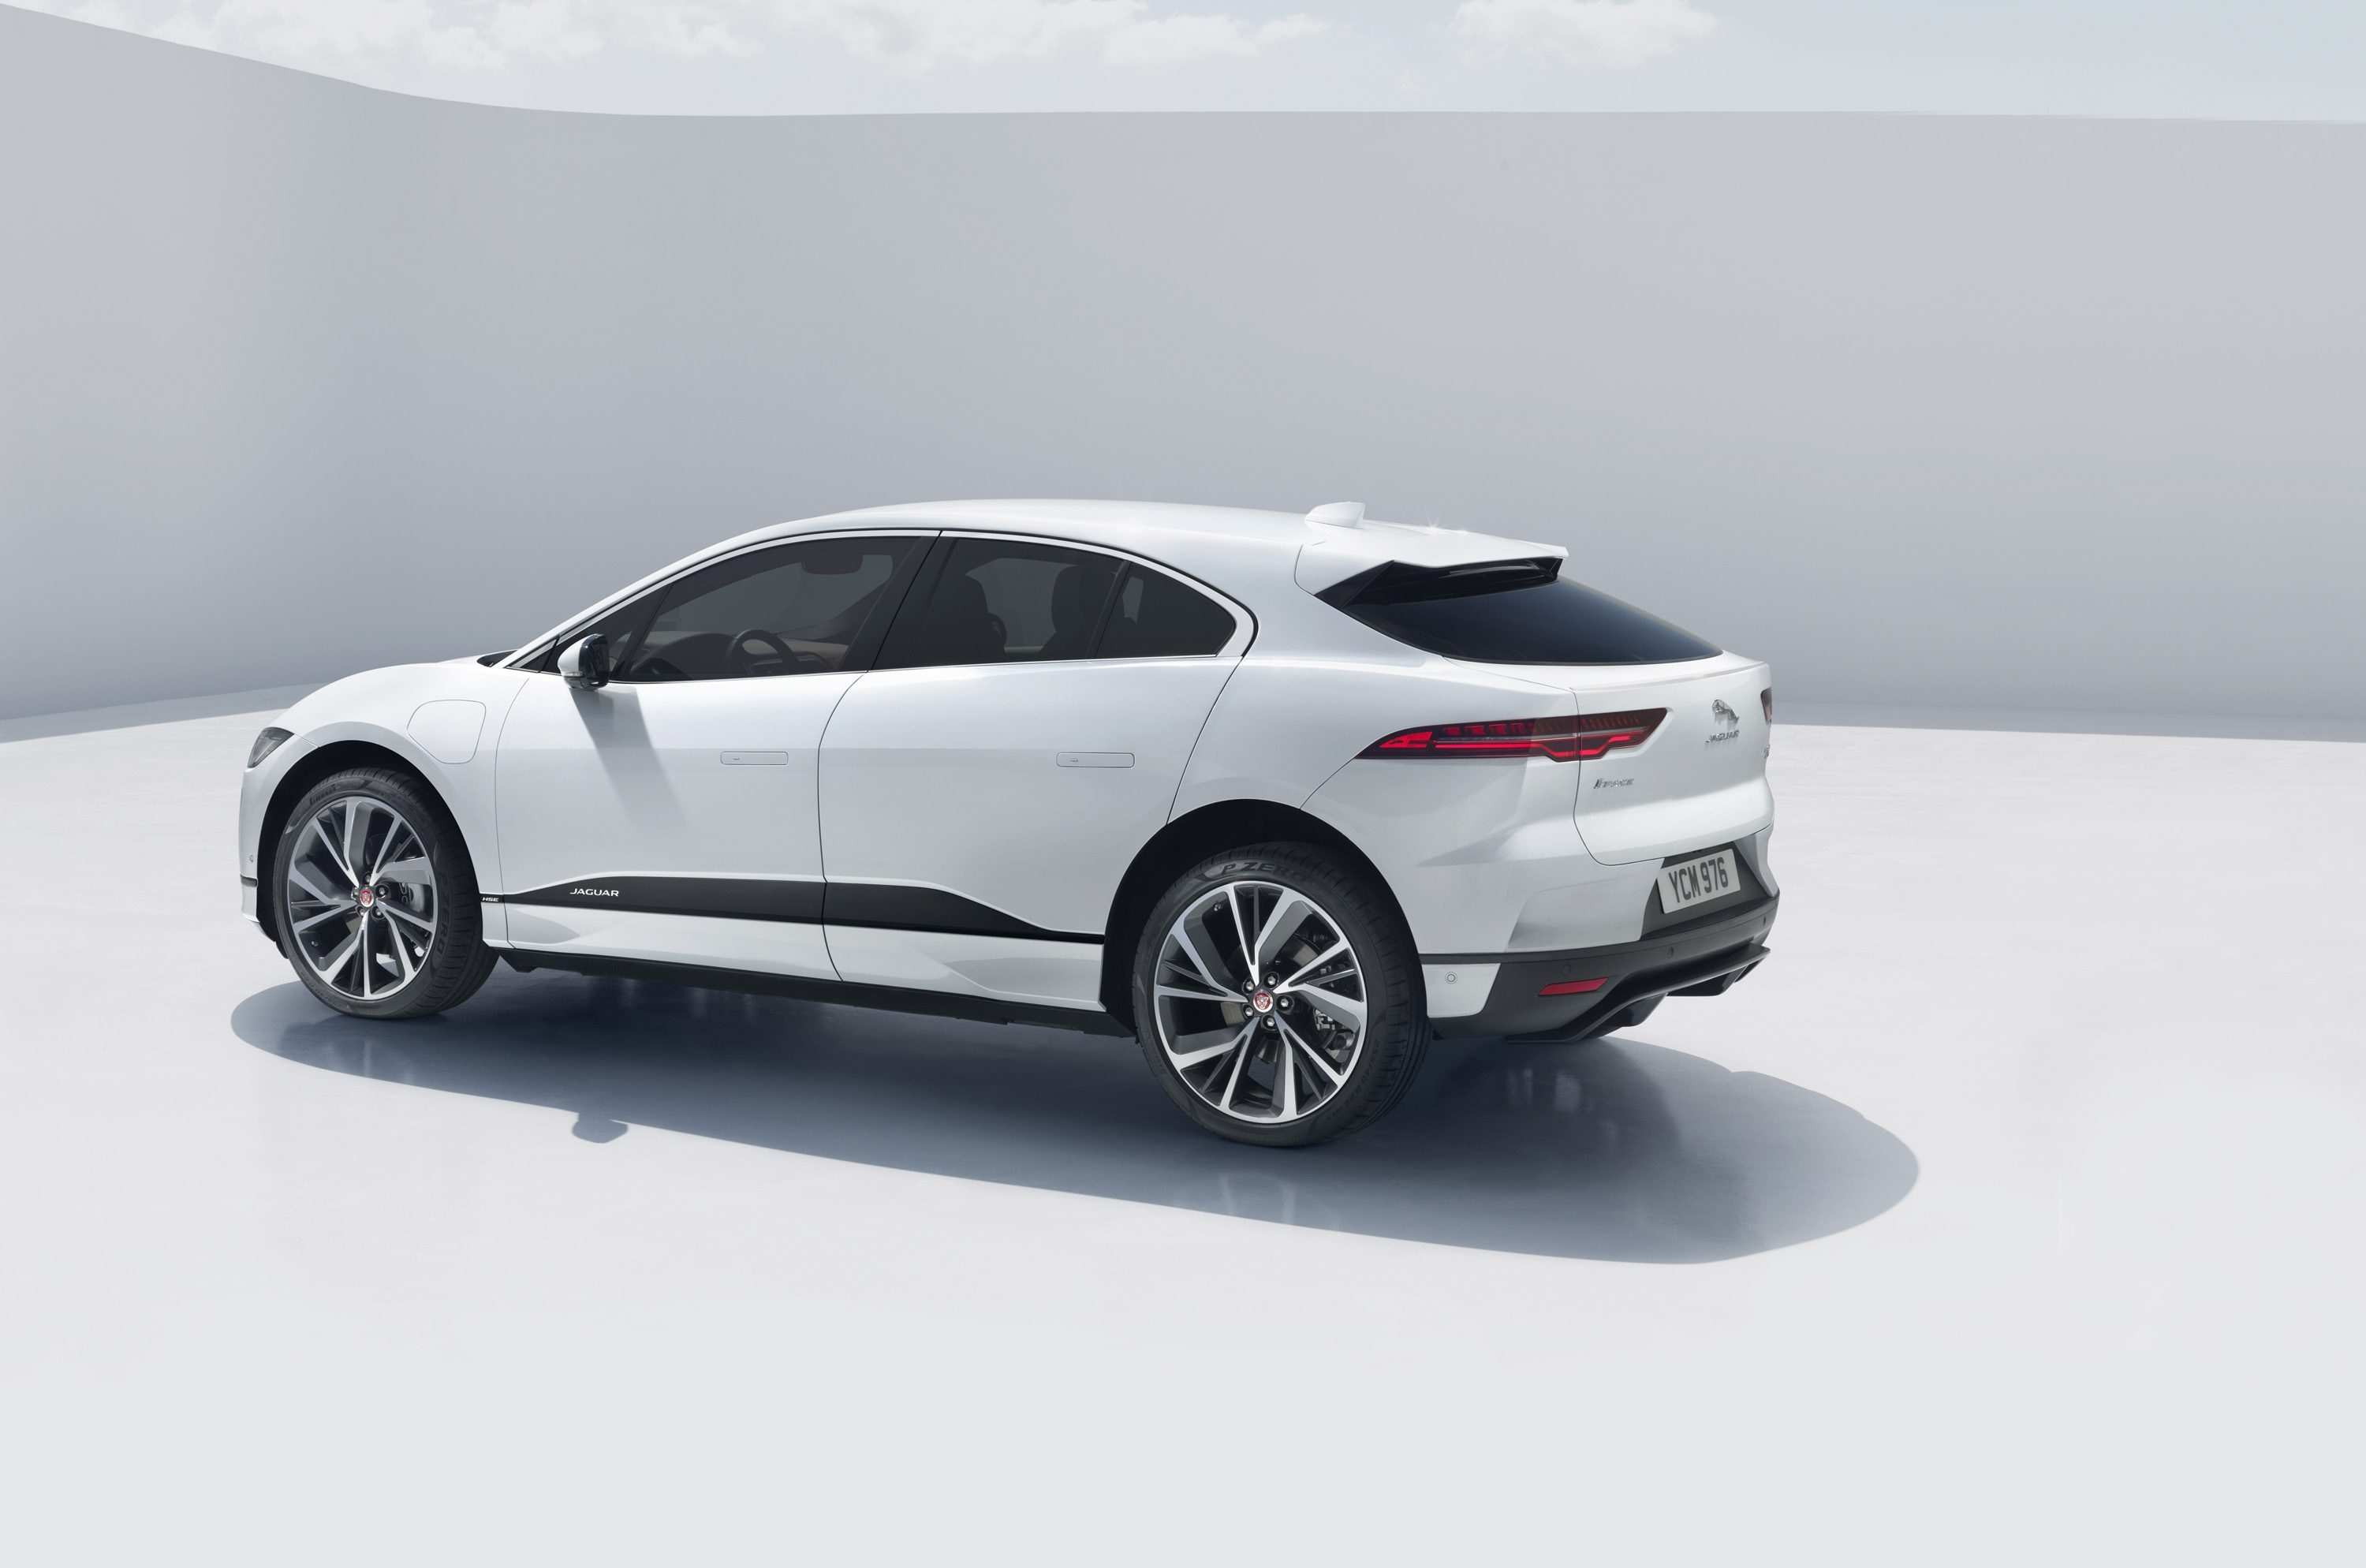 66 Concept of 2020 Jaguar I Pace First Edition Exterior and Interior by 2020 Jaguar I Pace First Edition